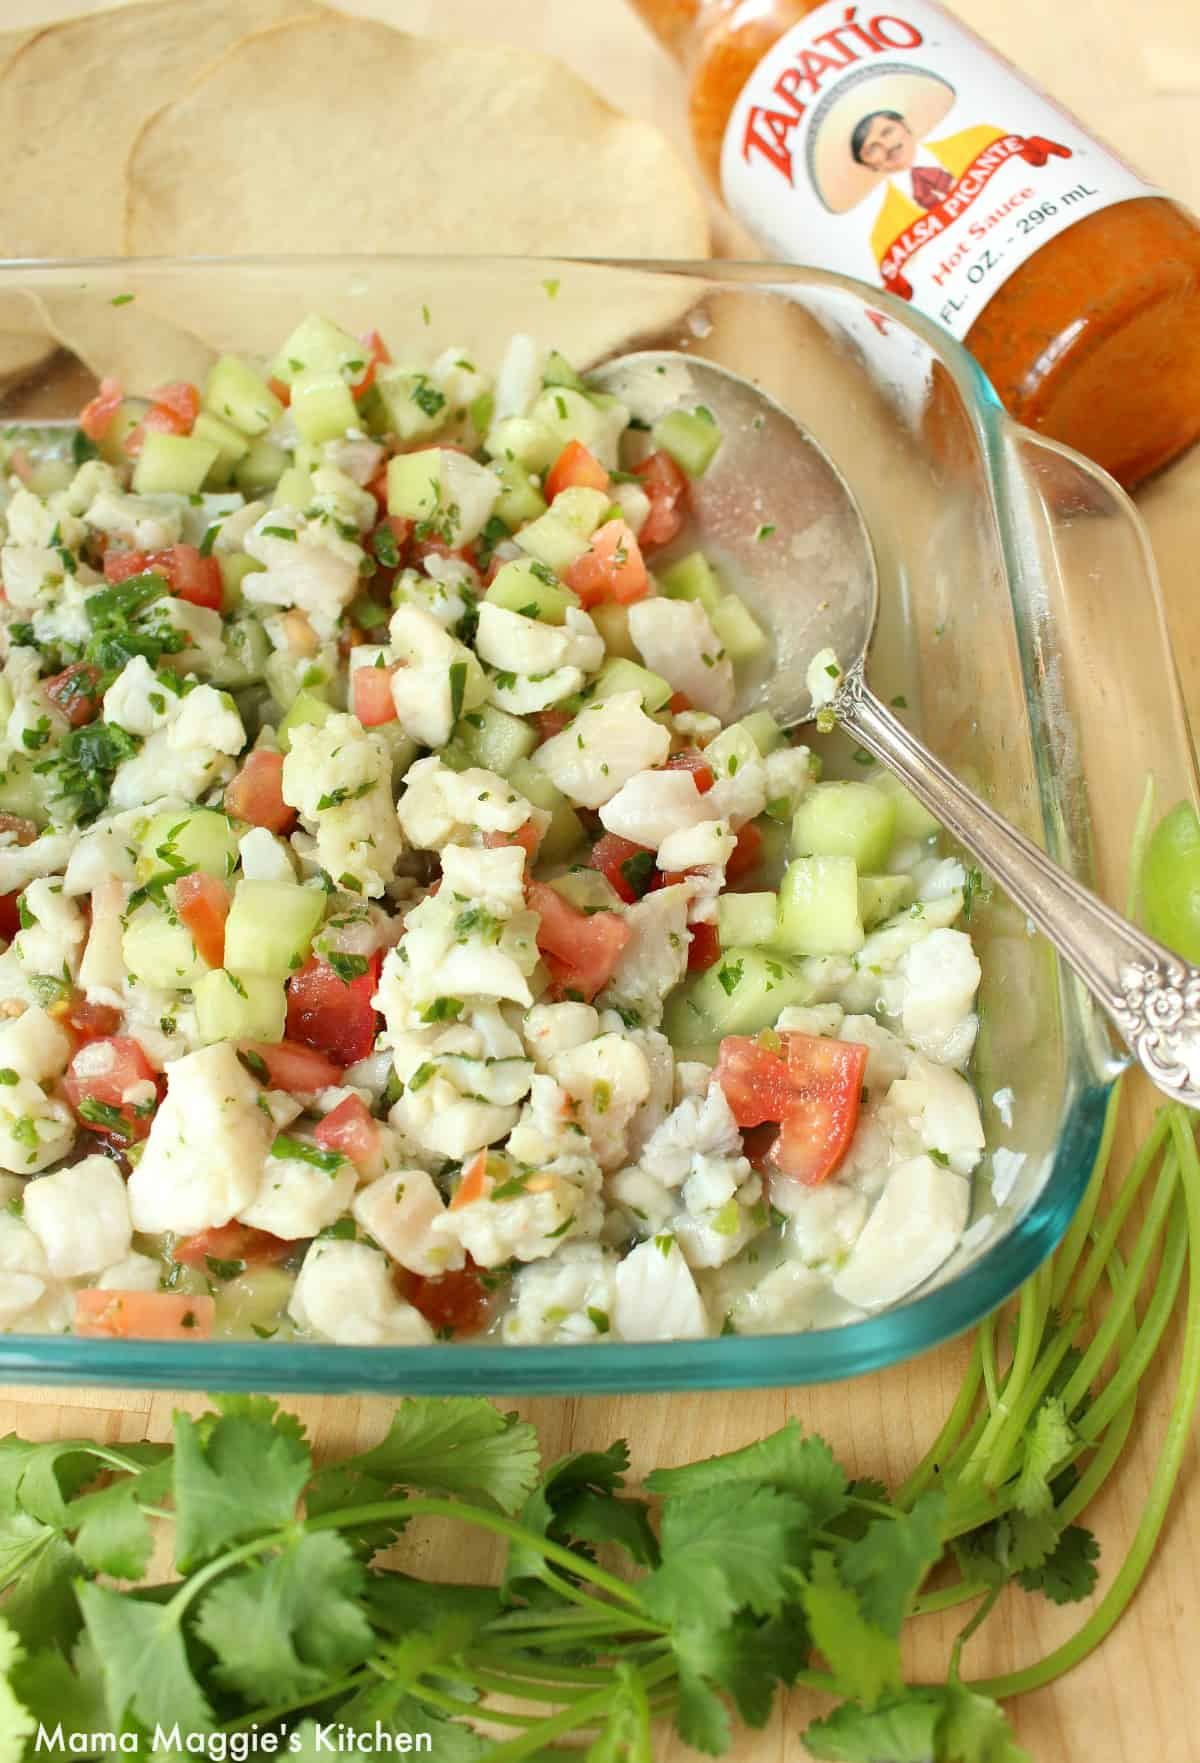 Fish ceviche in a glass baking dish with a sliver spoon and surrounded by cilantro.